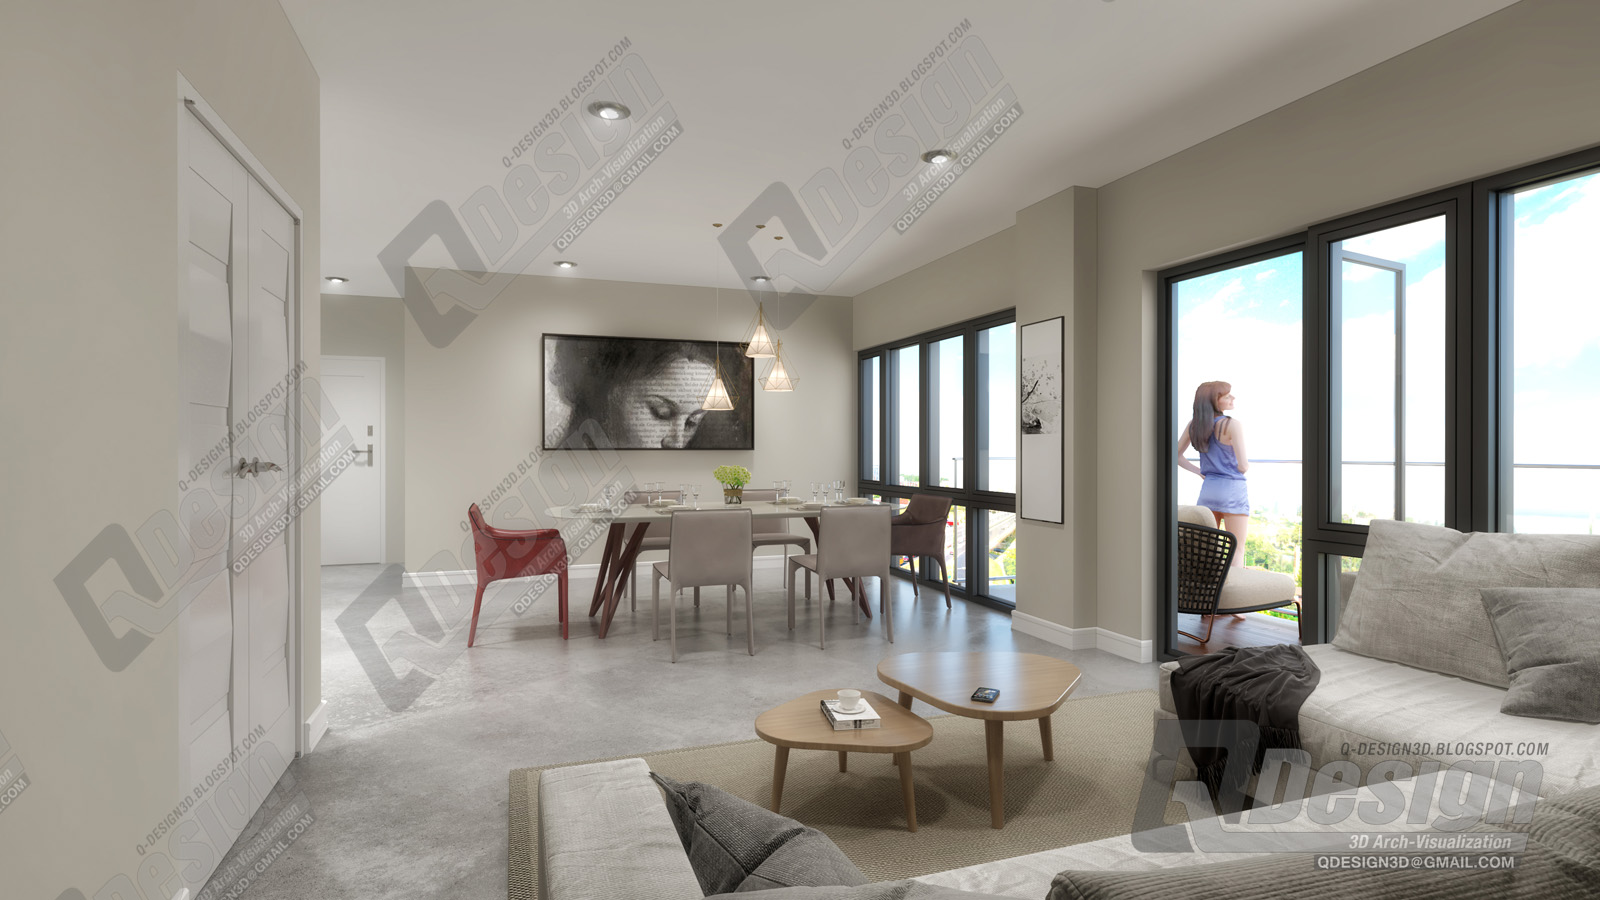 3D Architectural Visualization Rendering   free Classified   Free Advertising   free classified ads